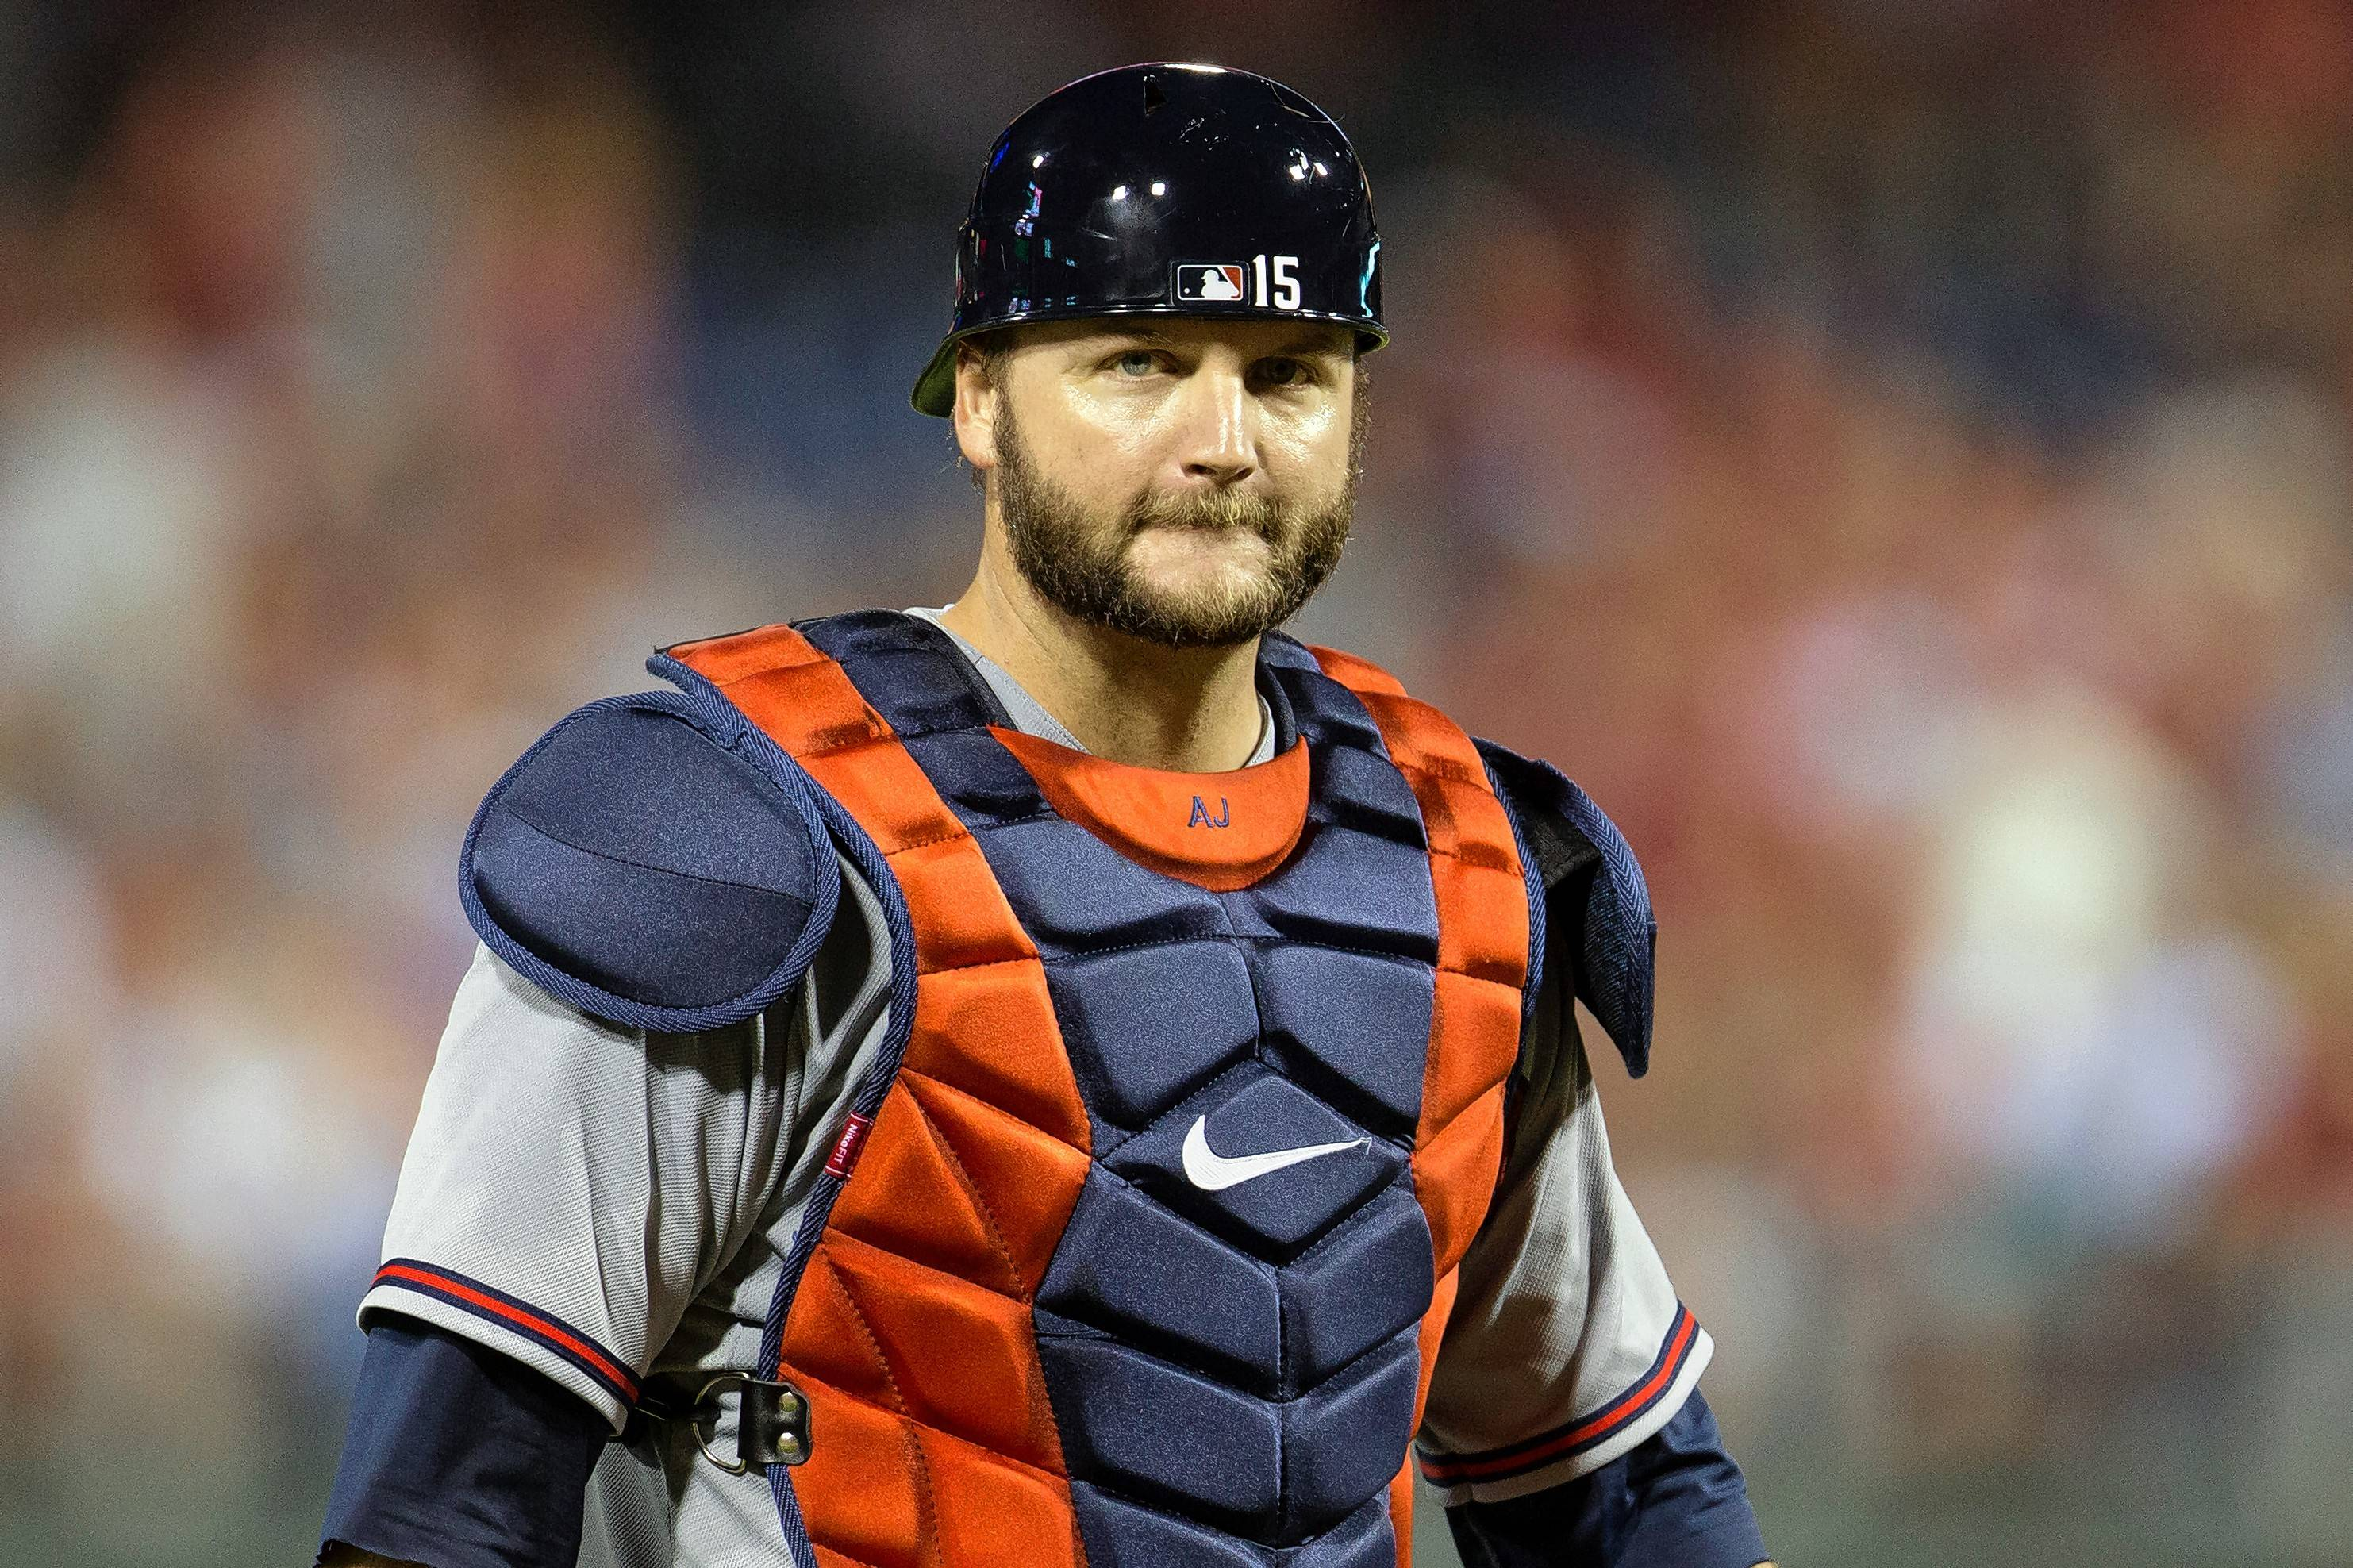 Atlanta Braves' A.J. Pierzynski looks on during the fifth inning of a baseball game against the Philadelphia Phillies, Friday, July 31, 2015, in Philadelphia. The Phillies won 9-3. (AP Photo/Chris Szagola)